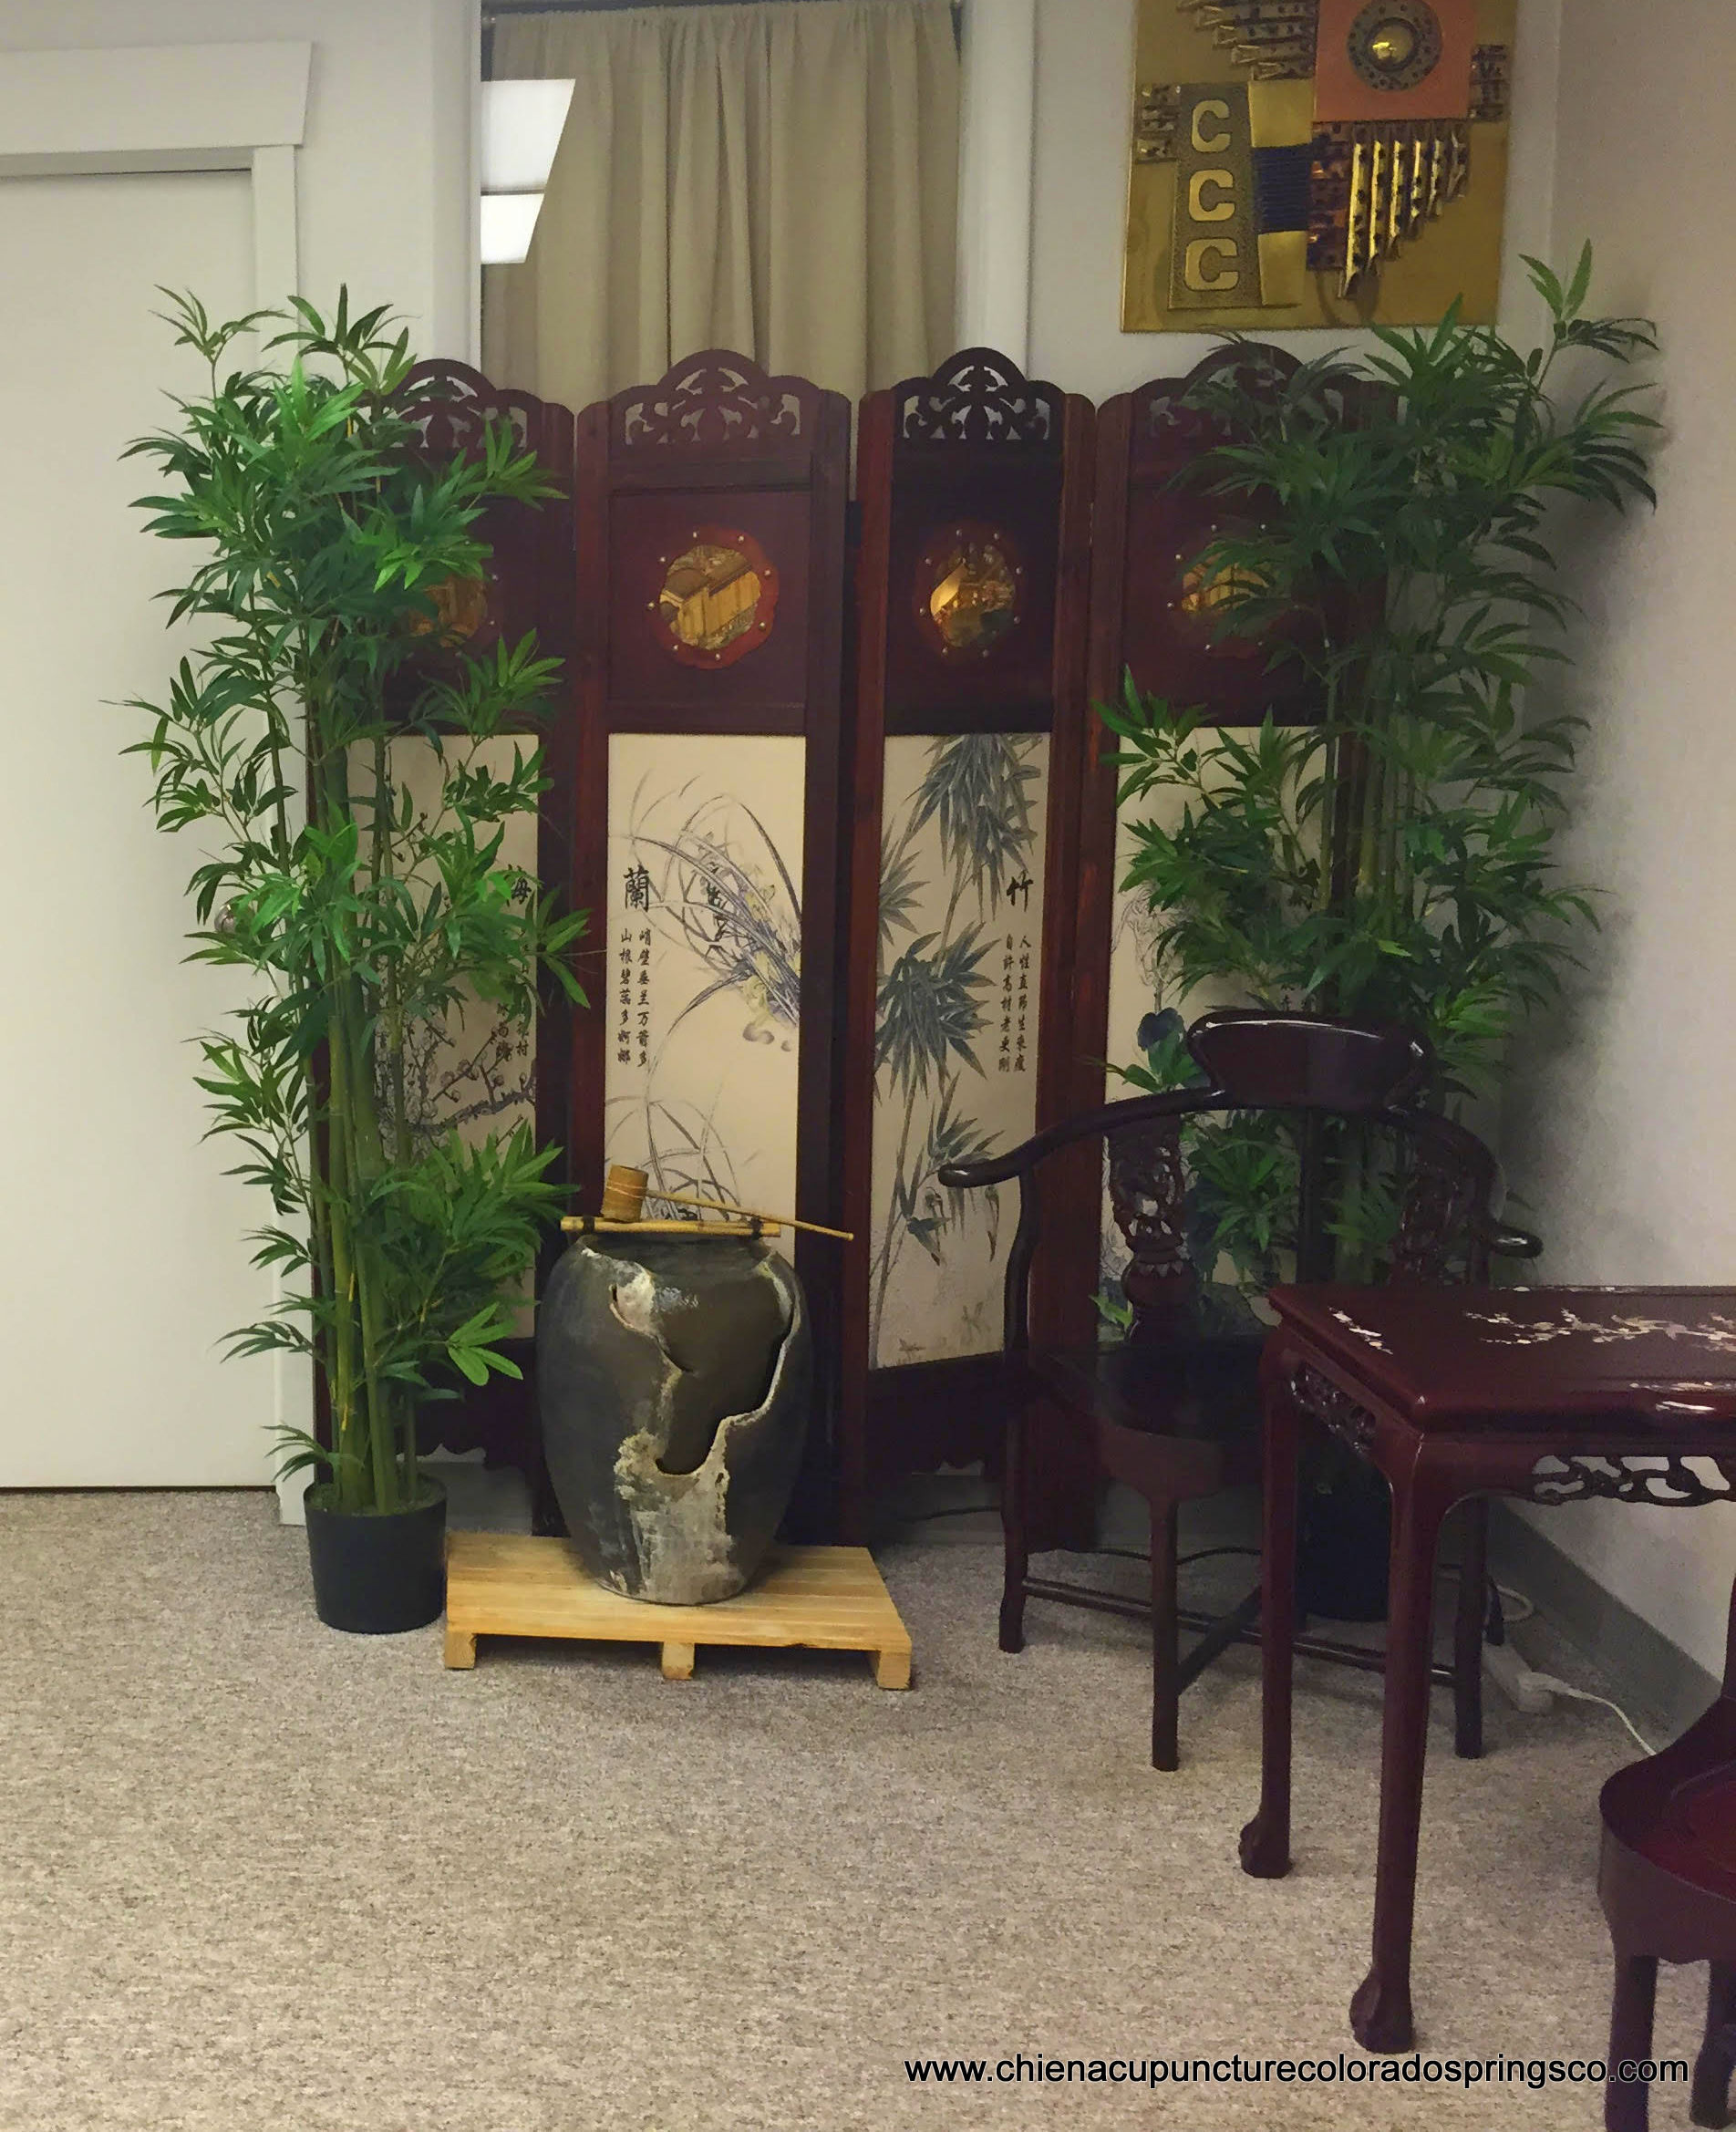 Chien Acupuncture Office Waiting Room